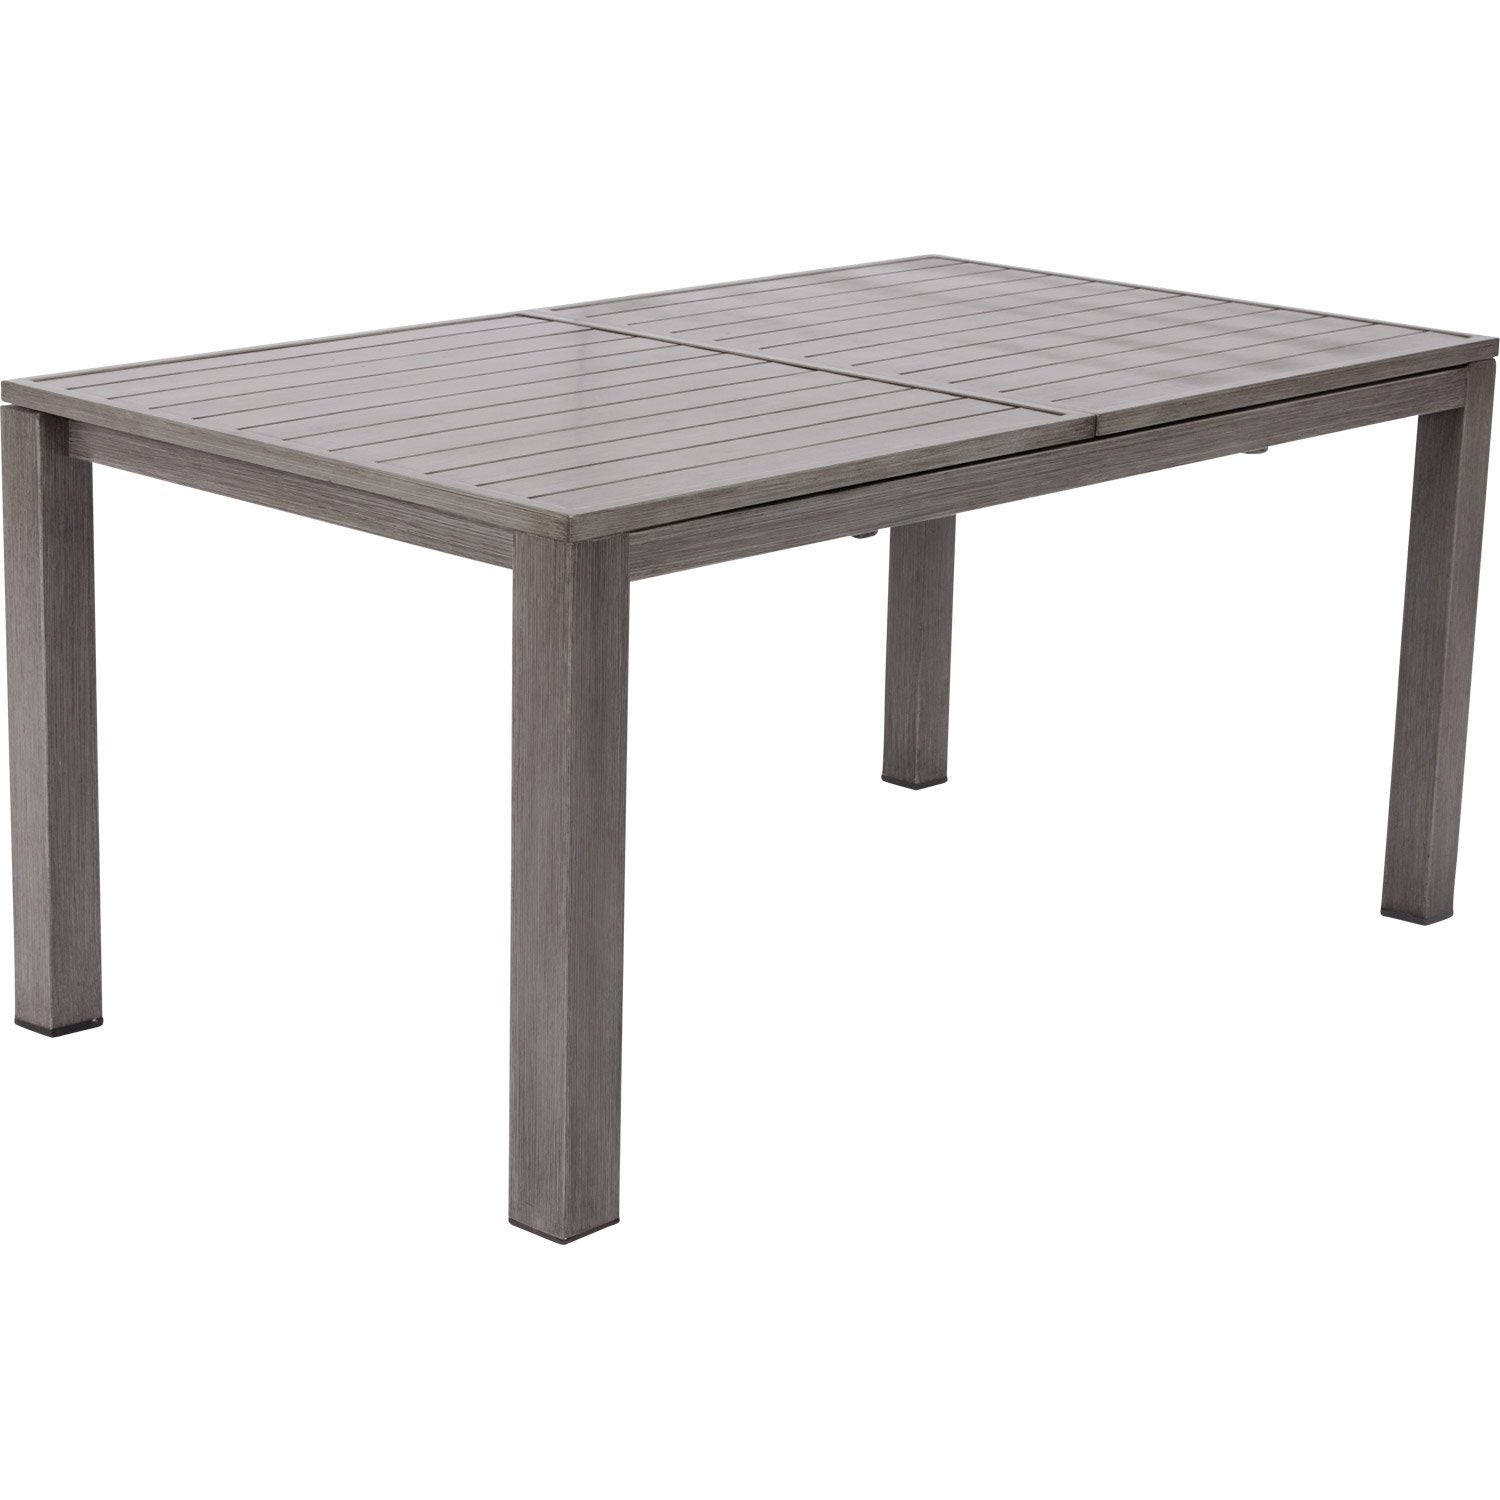 Table de jardin naterial antibes rectangulaire gris look for Table exterieur 10 personnes